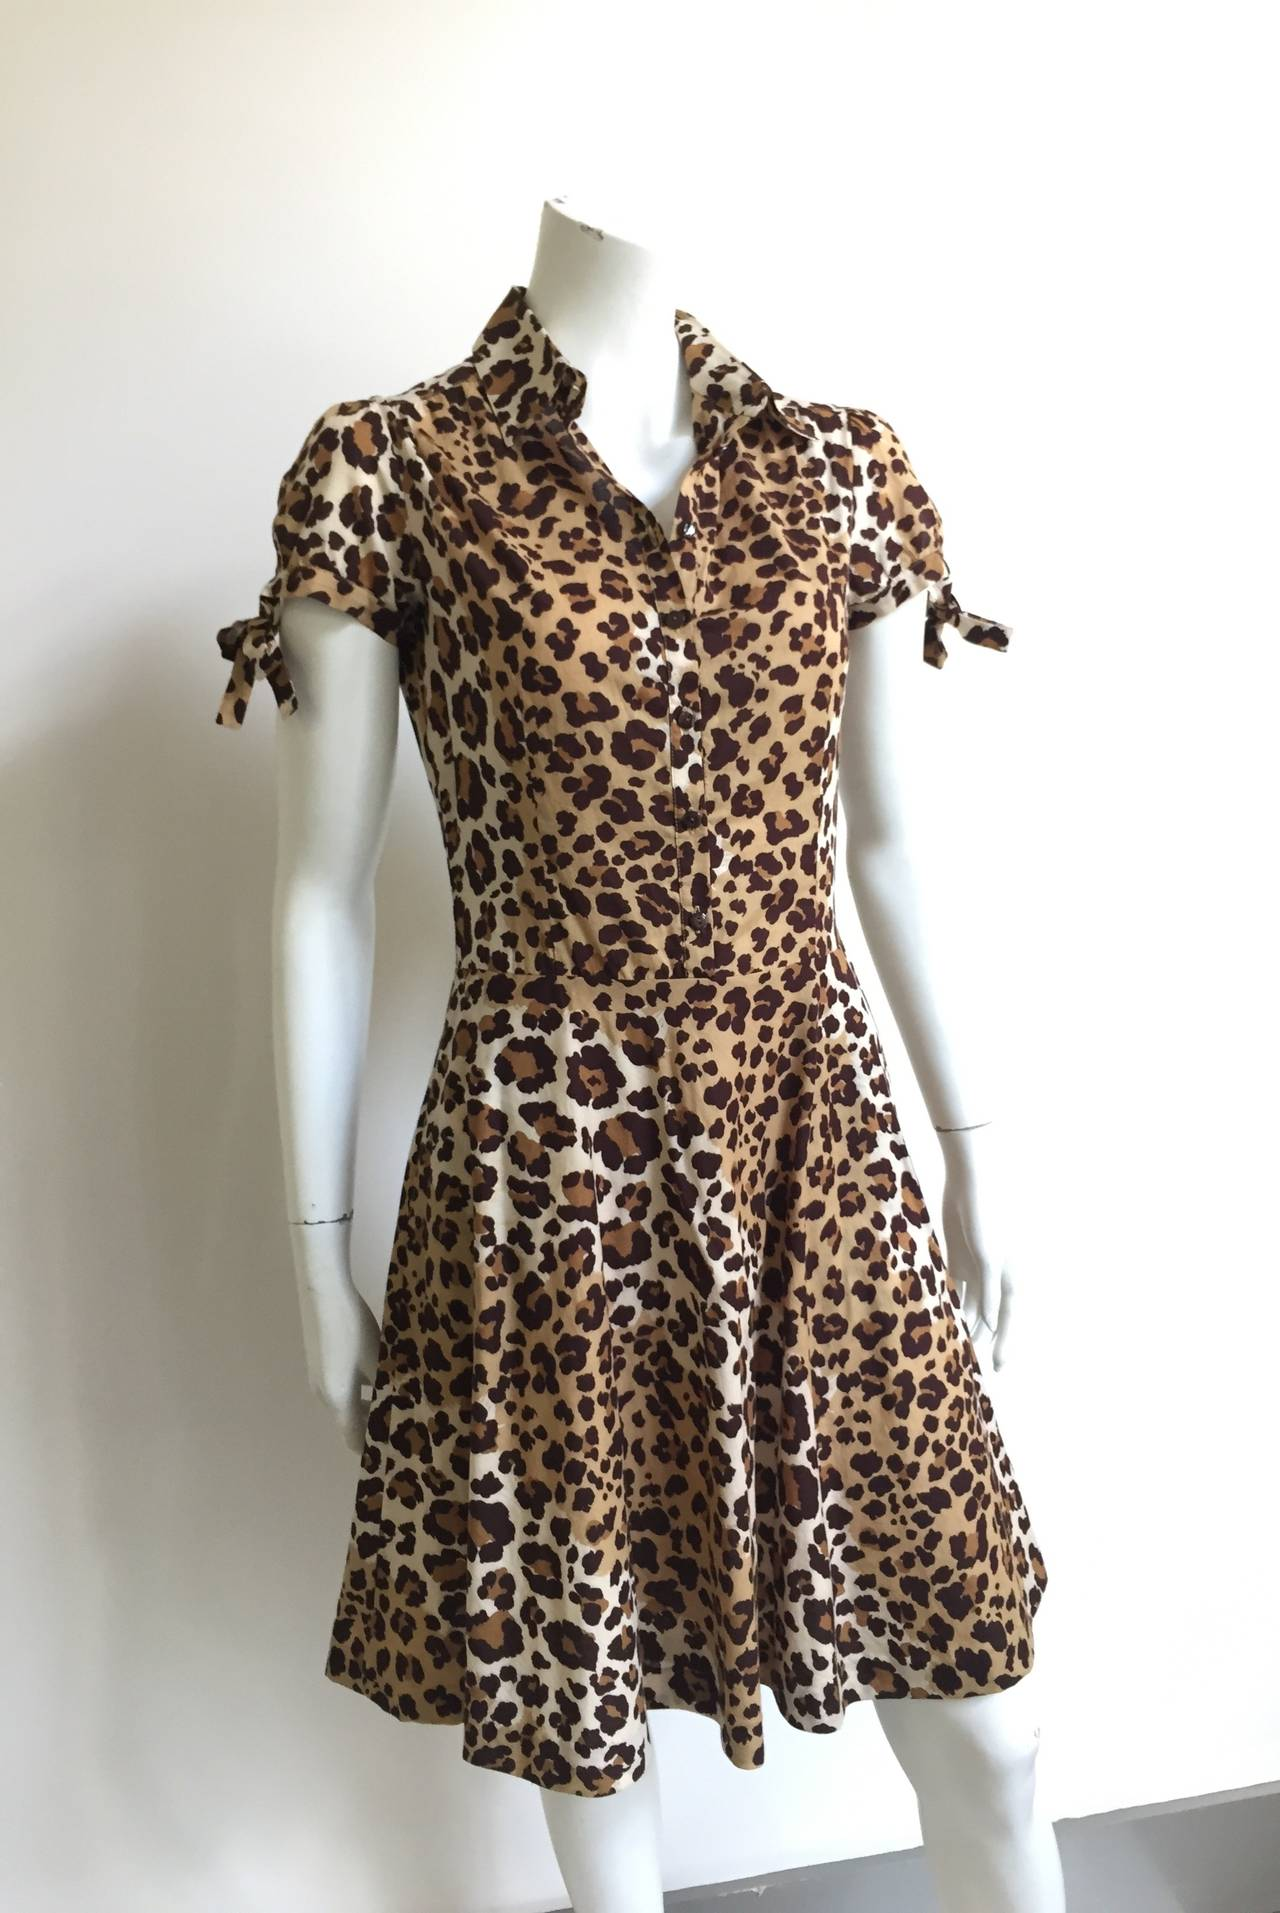 Moschino cheetah print dress with pockets size 6. 2